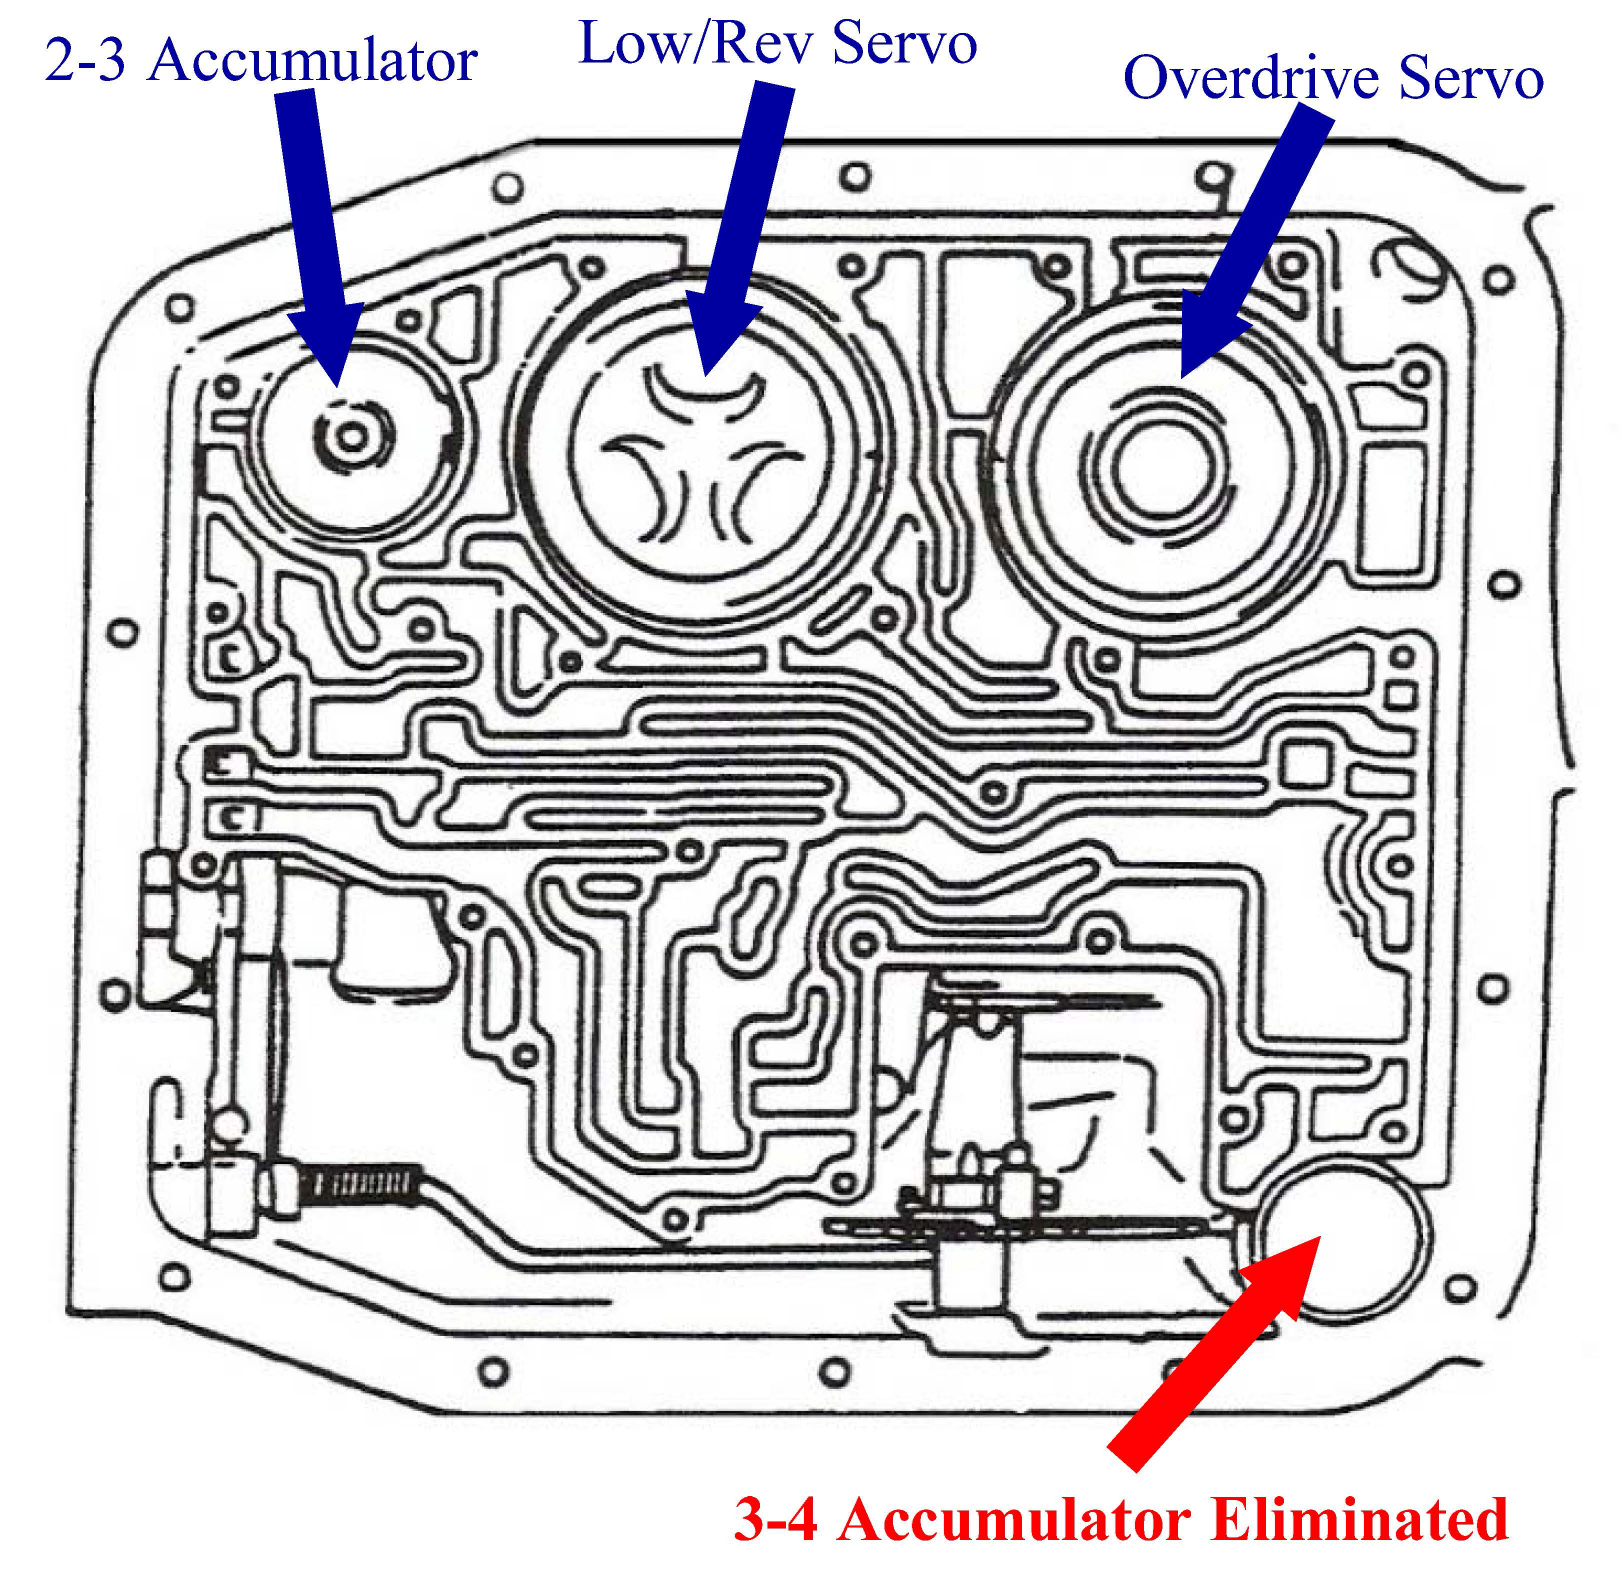 hight resolution of ford aod transmission valve body diagram ford aod valve body diagram mix sonnax ford aod